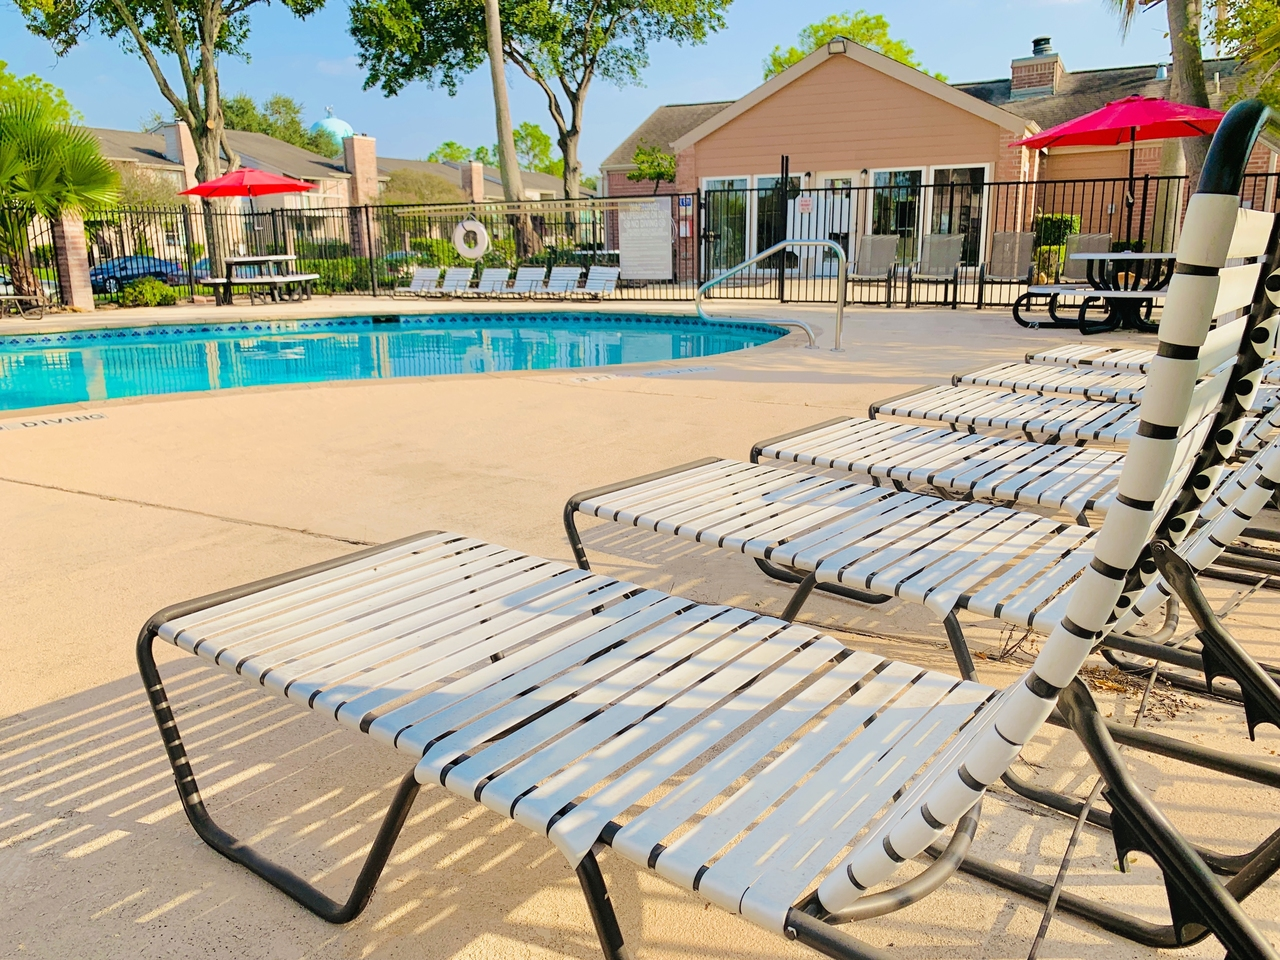 Lounge Chair beside the Pool at Ashford Pointe Apartments in Houston, Texas